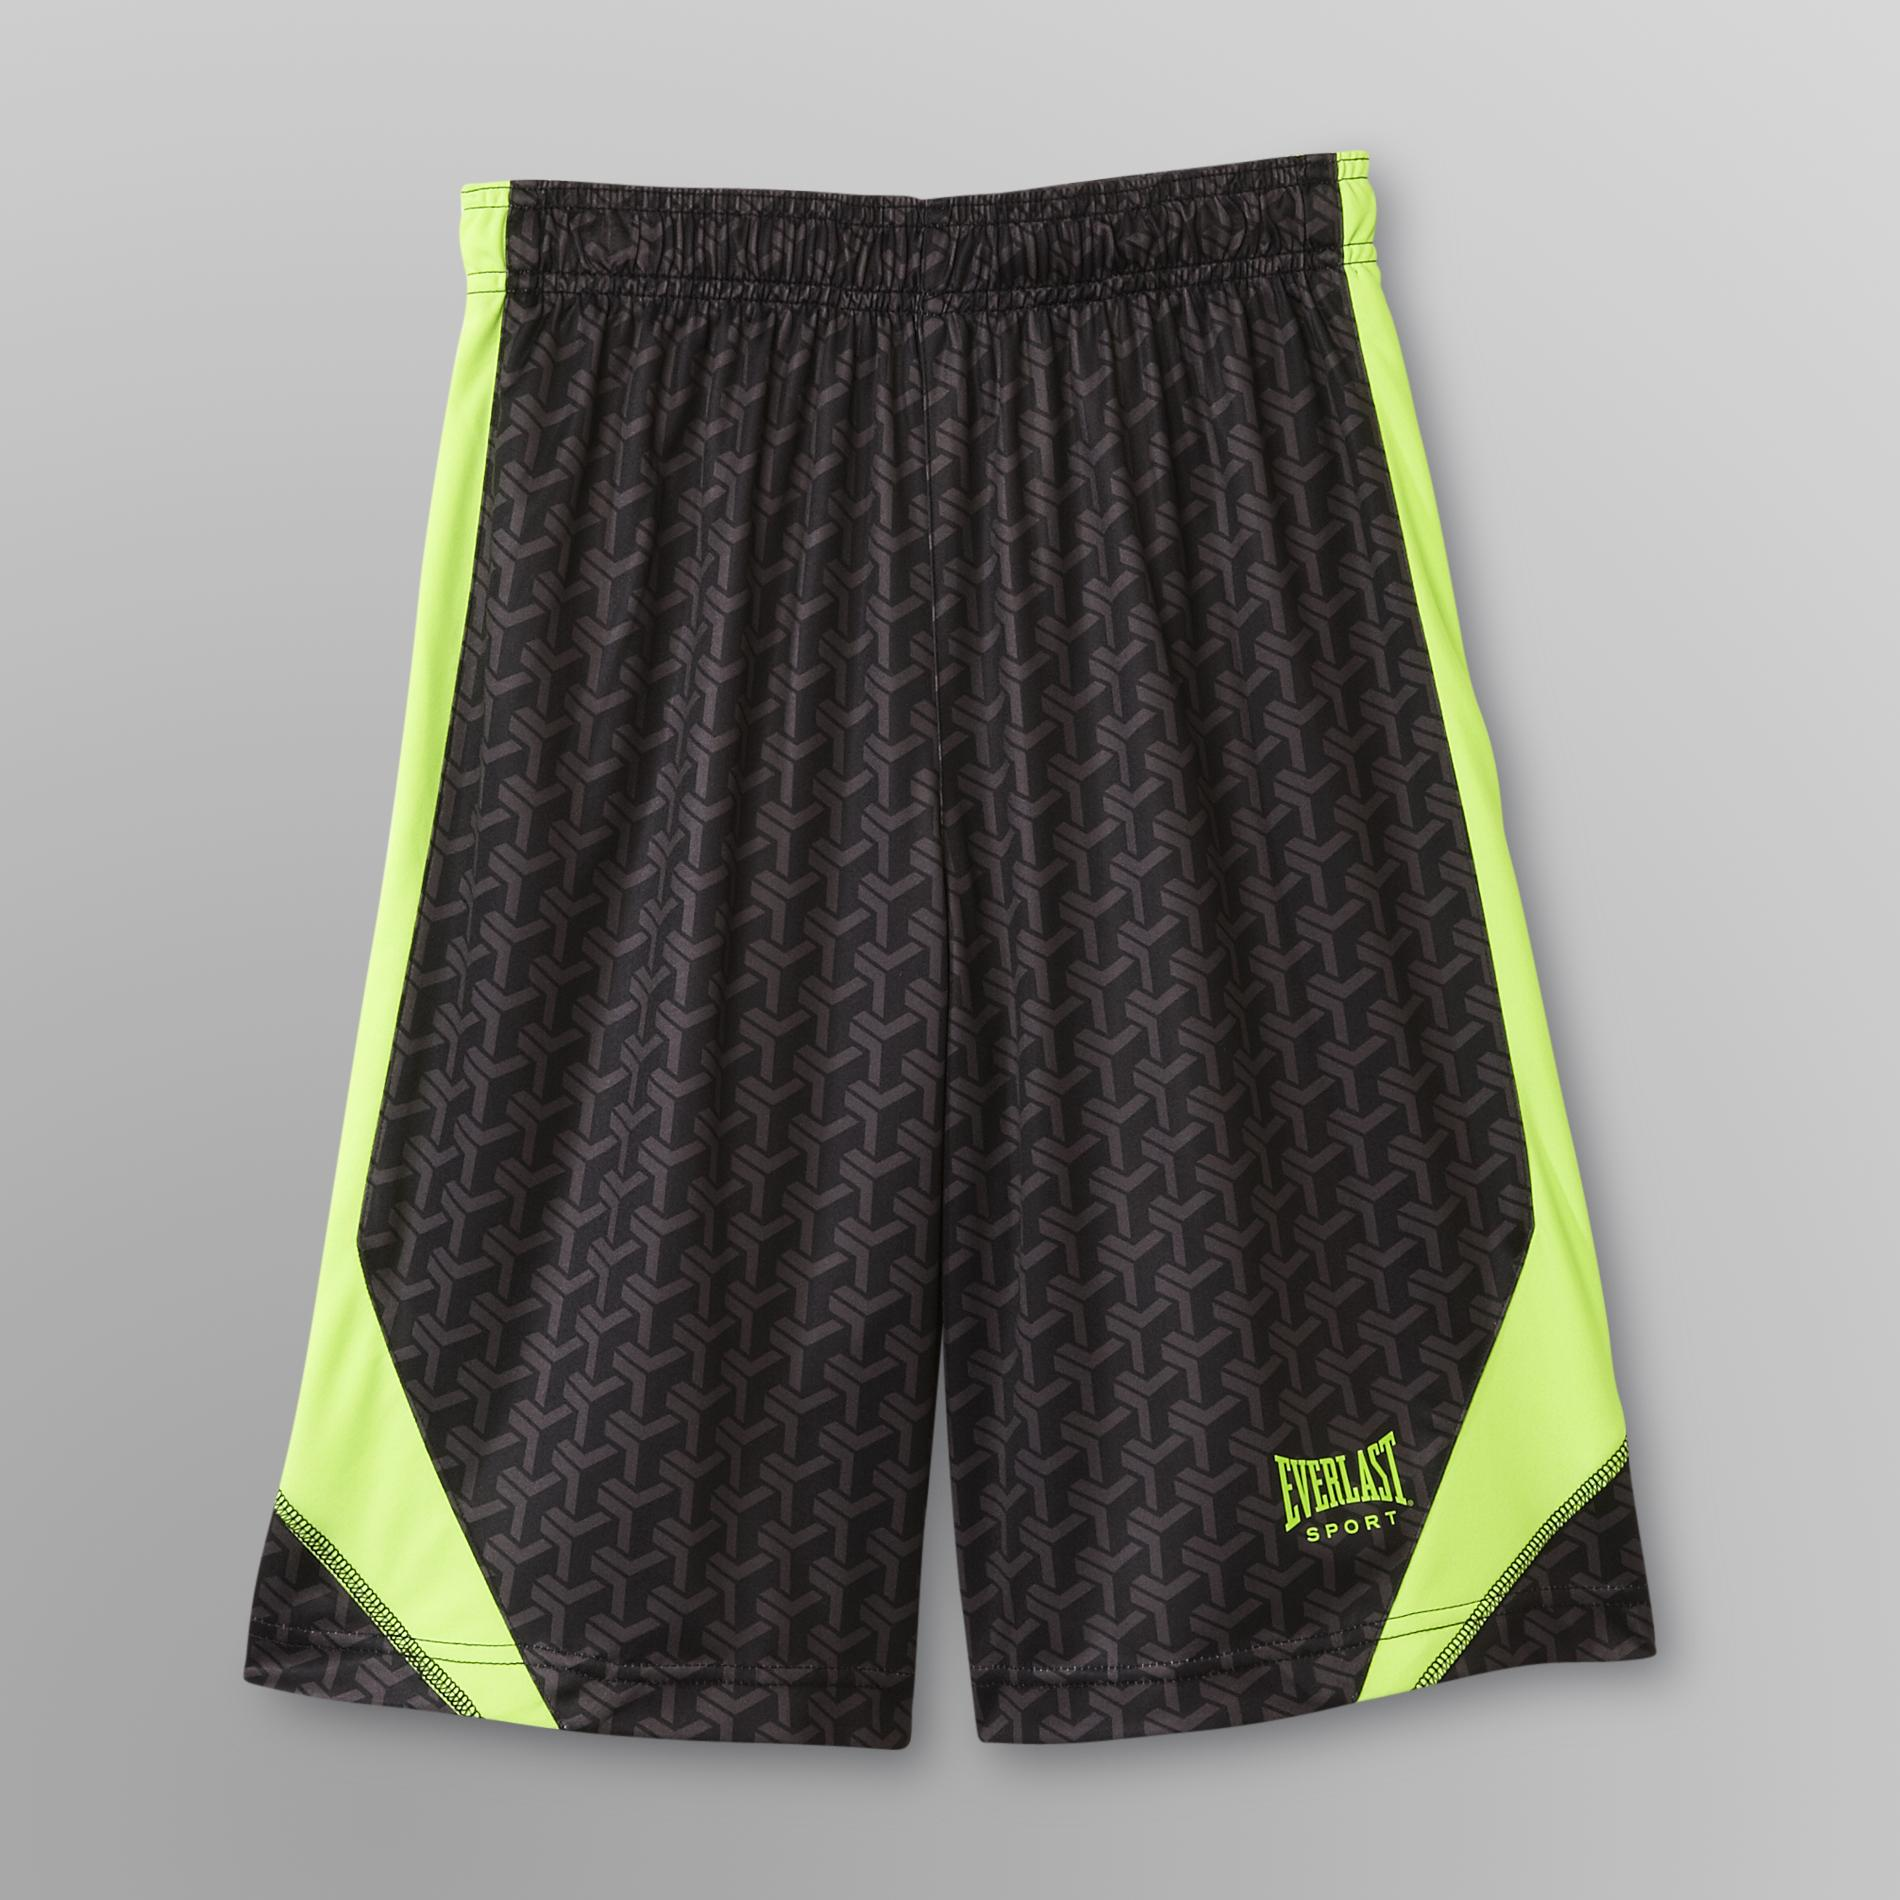 Everlast® Sport Boy's Athletic Shorts - Neon at Kmart.com